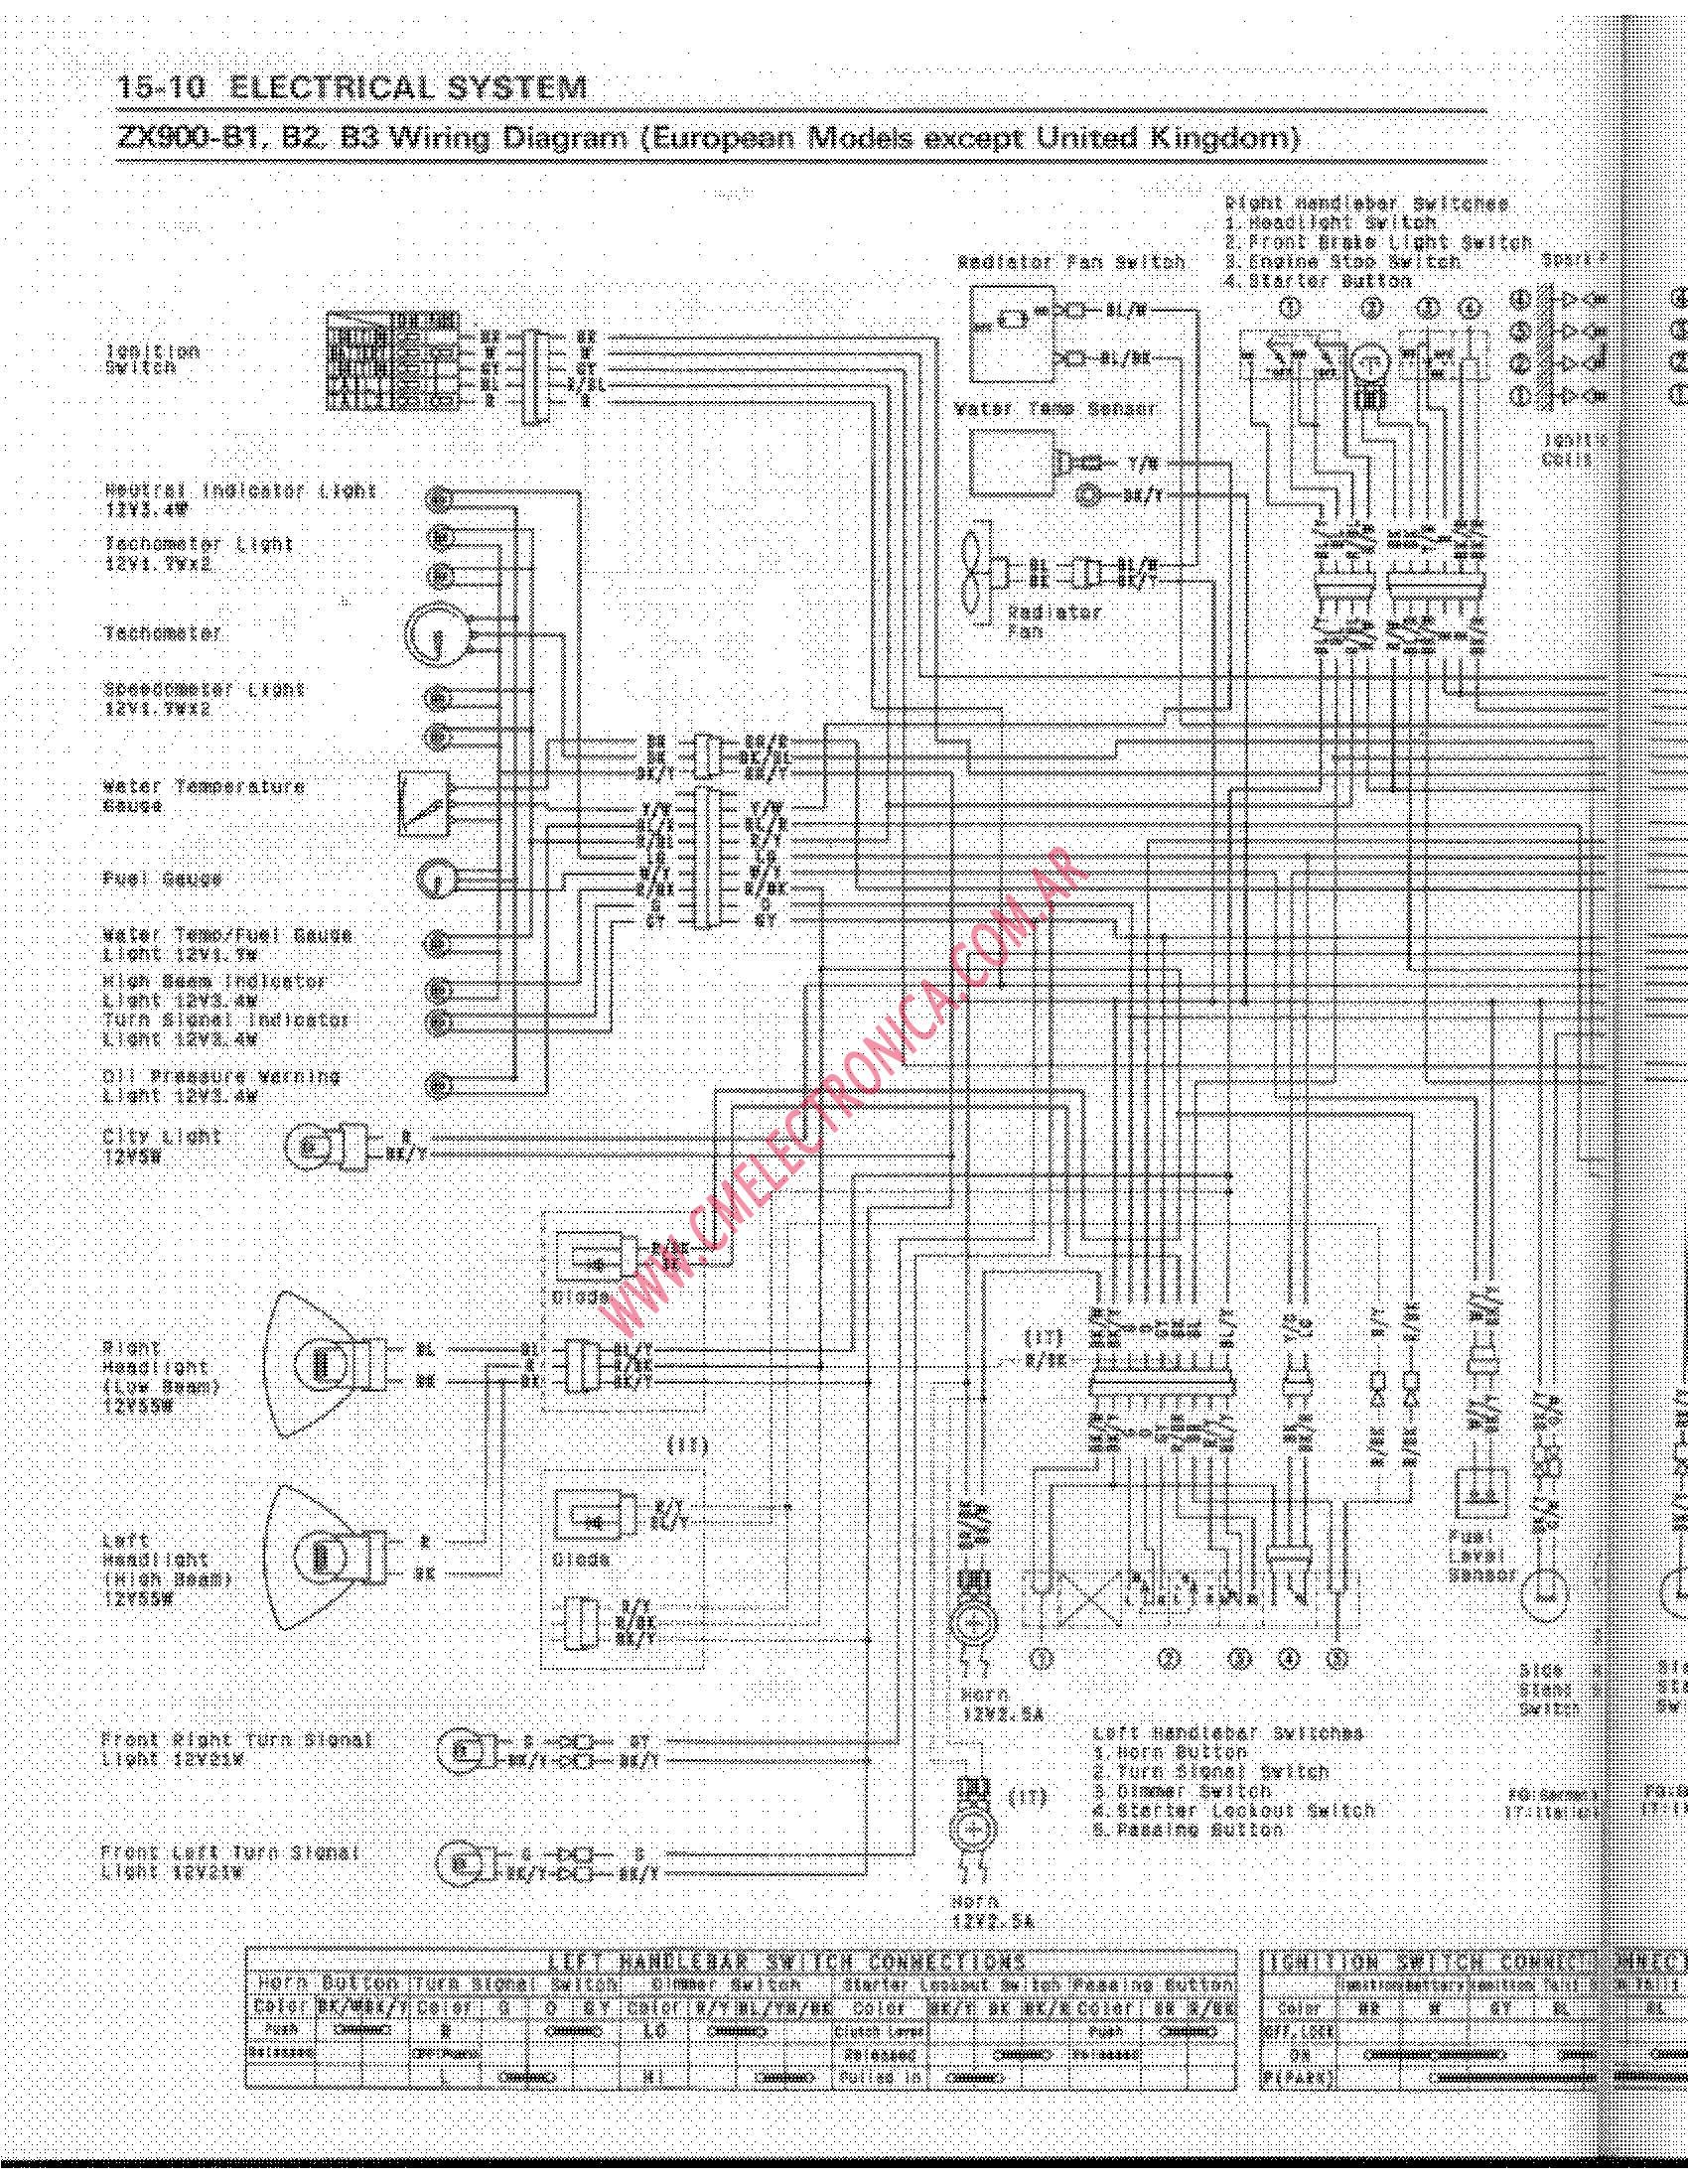 kawasaki zx9r 96 kawasaki zx9r wiring diagram wiring diagrams kawasaki zx9r e1 wiring diagram at alyssarenee.co